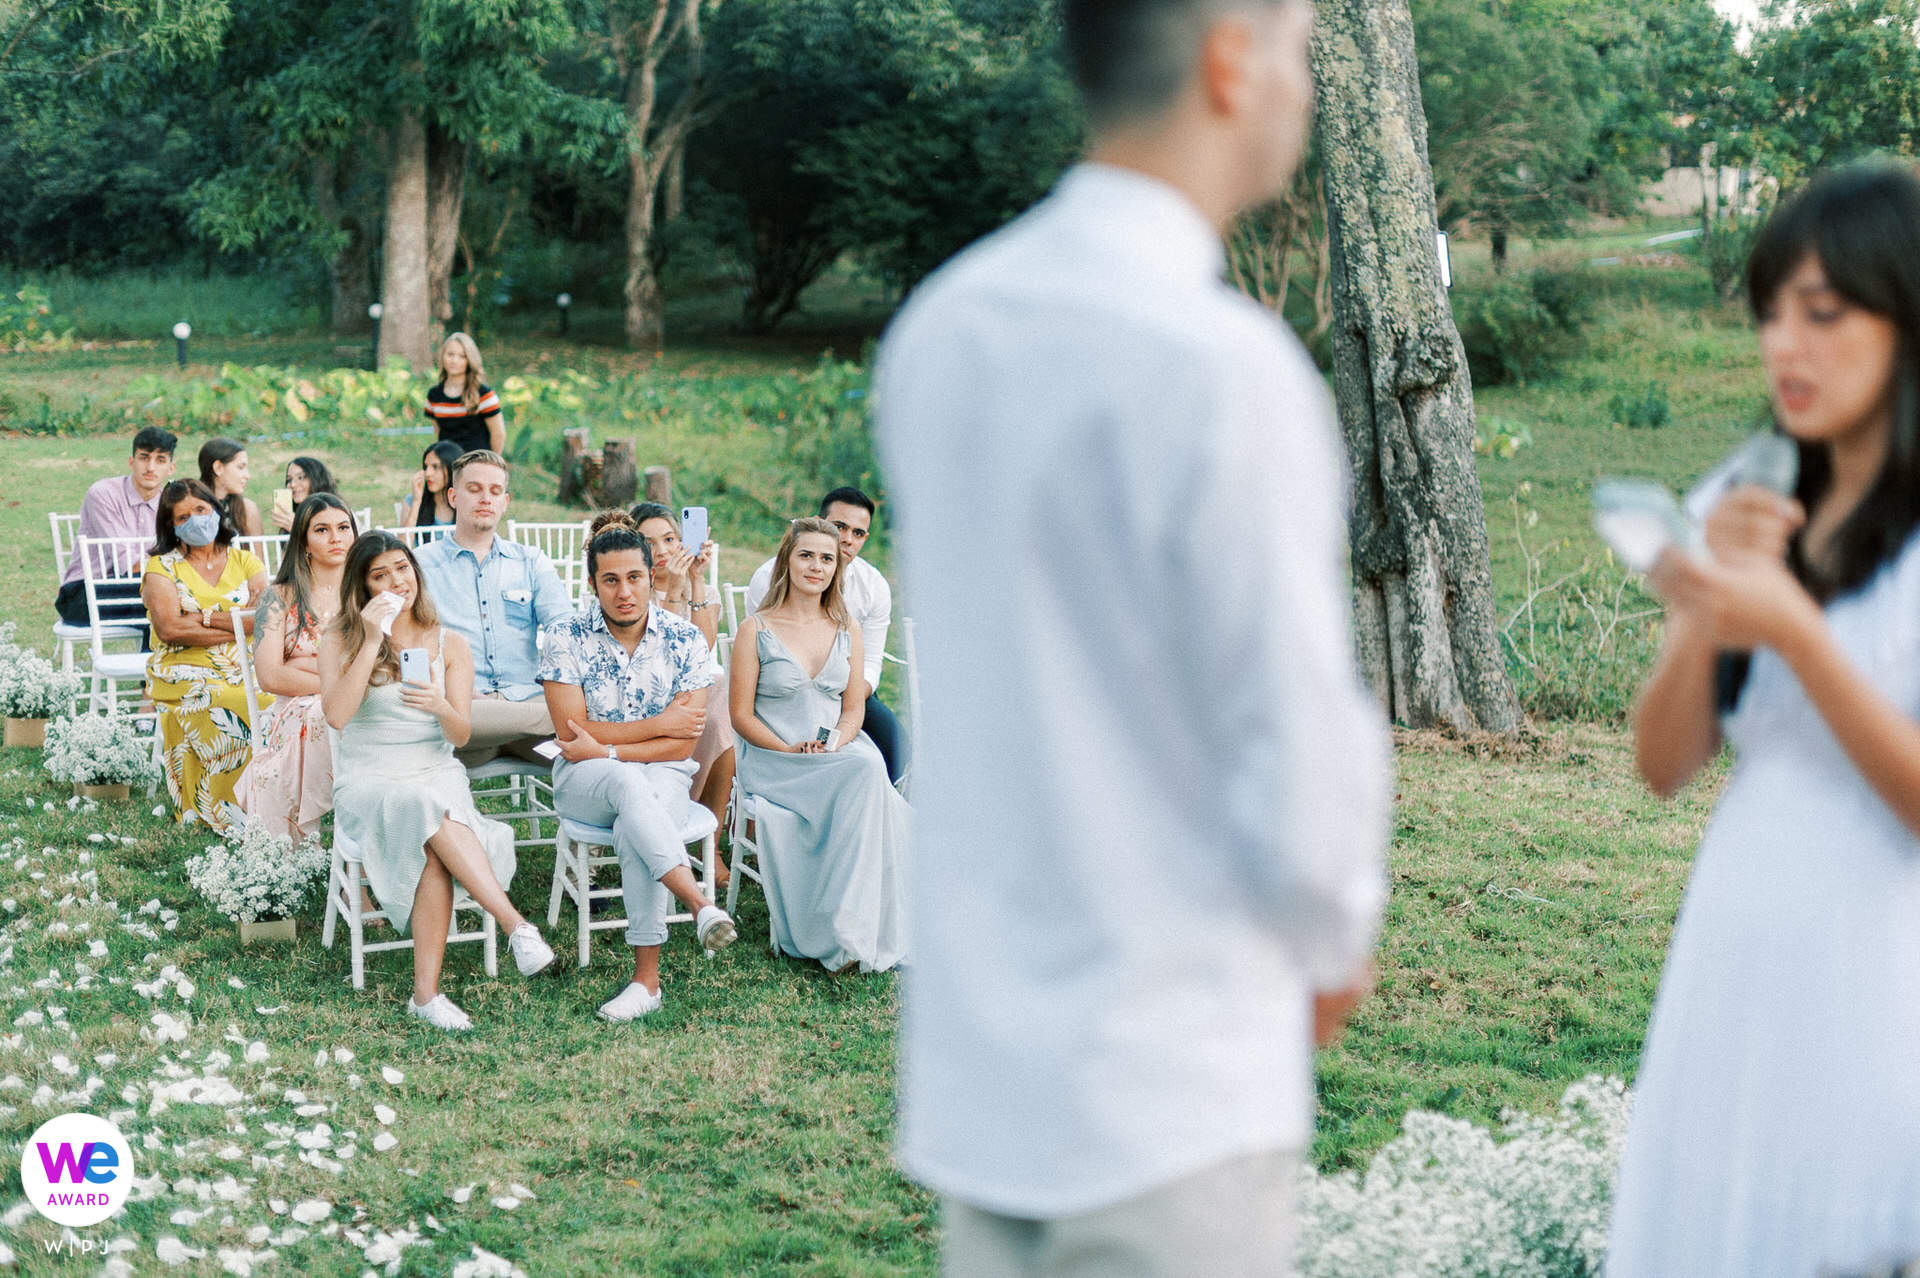 Private Farm, Brazil Elopement Photography | The bride and groom, together with their brothers and family